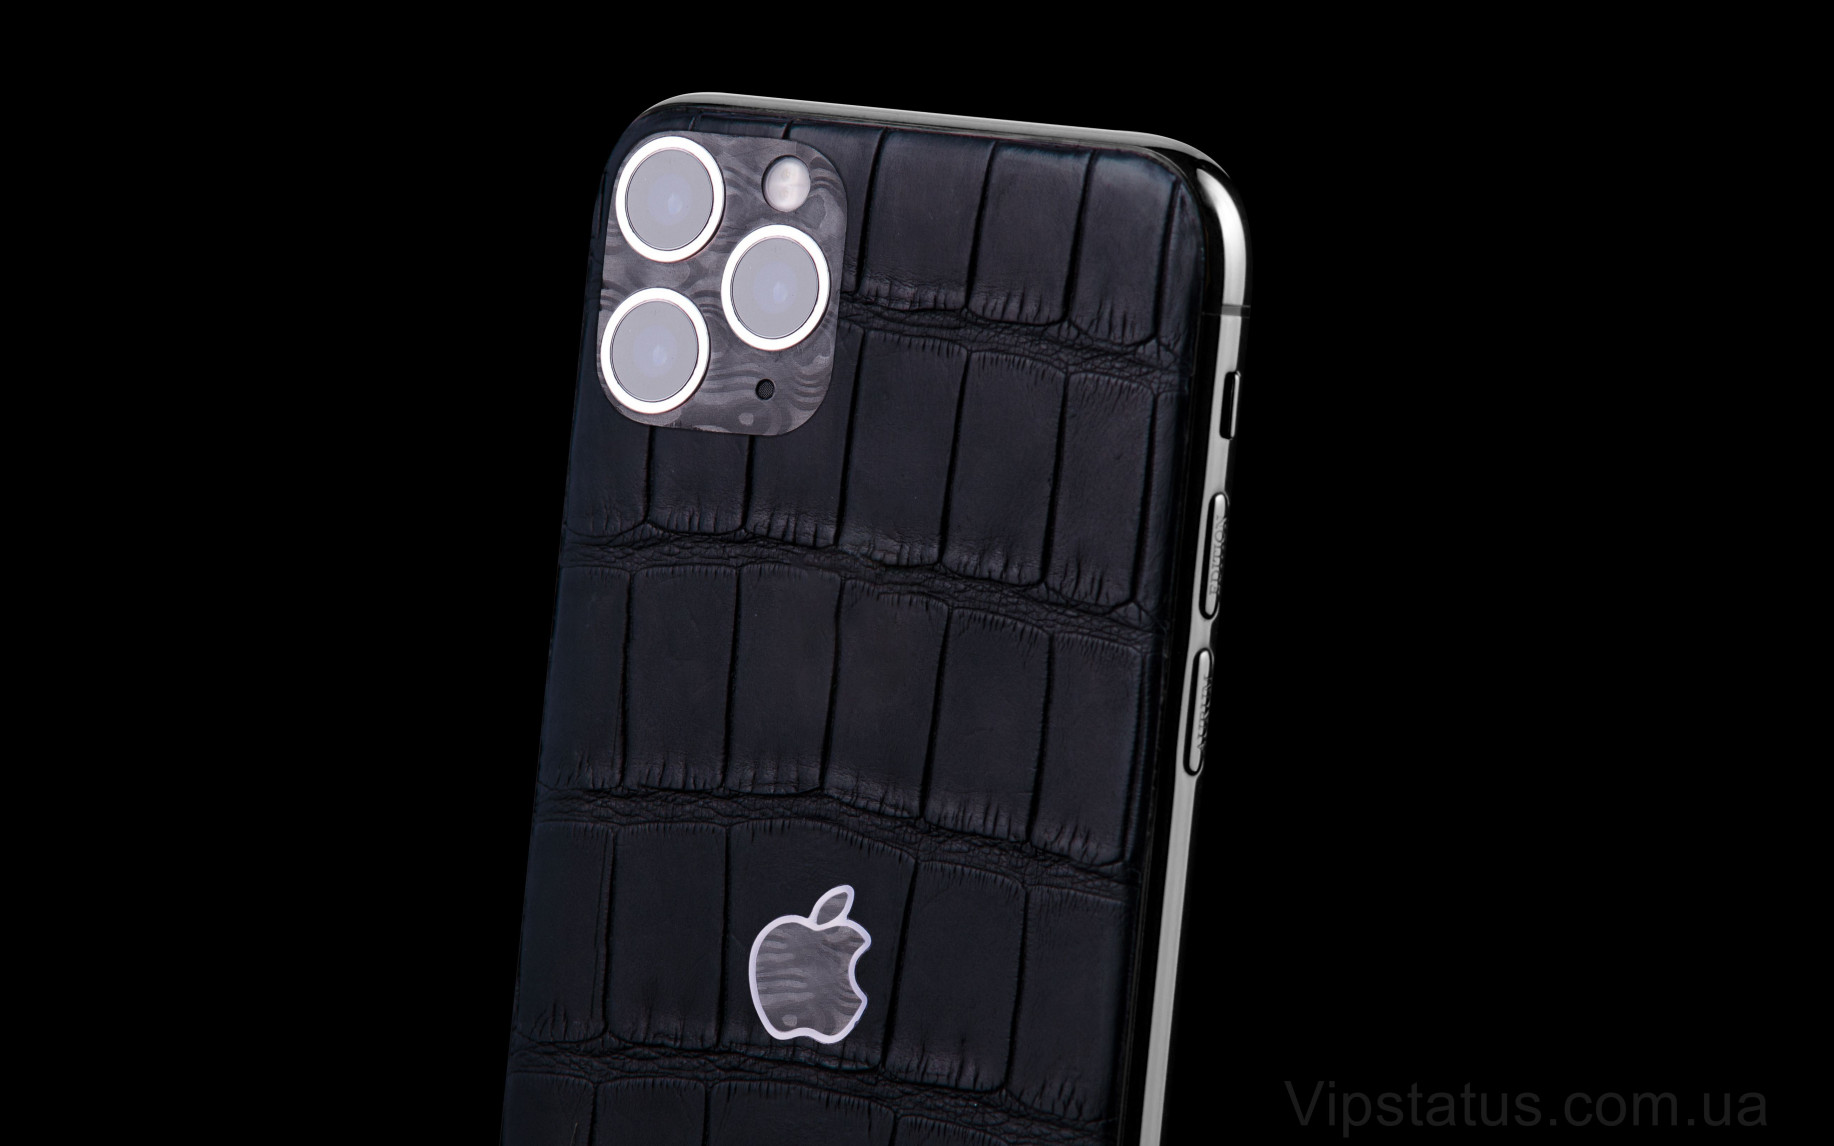 Elite Black Lord Carbon IPHONE 12 PRO MAX 512 GB Black Lord Carbon IPHONE 12 PRO MAX 512 GB image 3